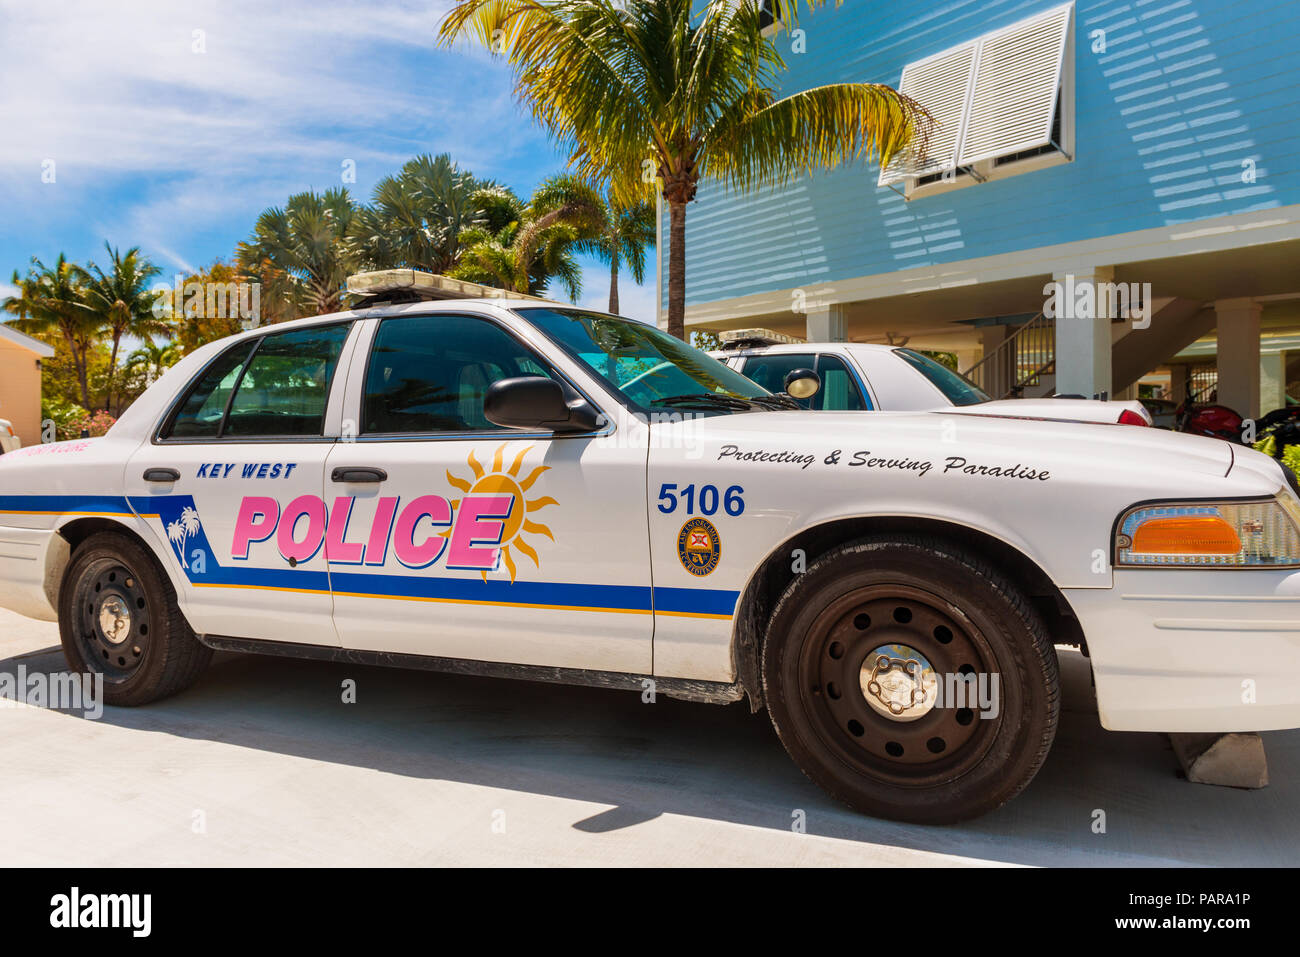 """Key West Police Car in Little Torch Key, Florida Keys, Florida, USA, The tagline on the car says """"Protecting & Serving Paradise."""" Stock Photo"""